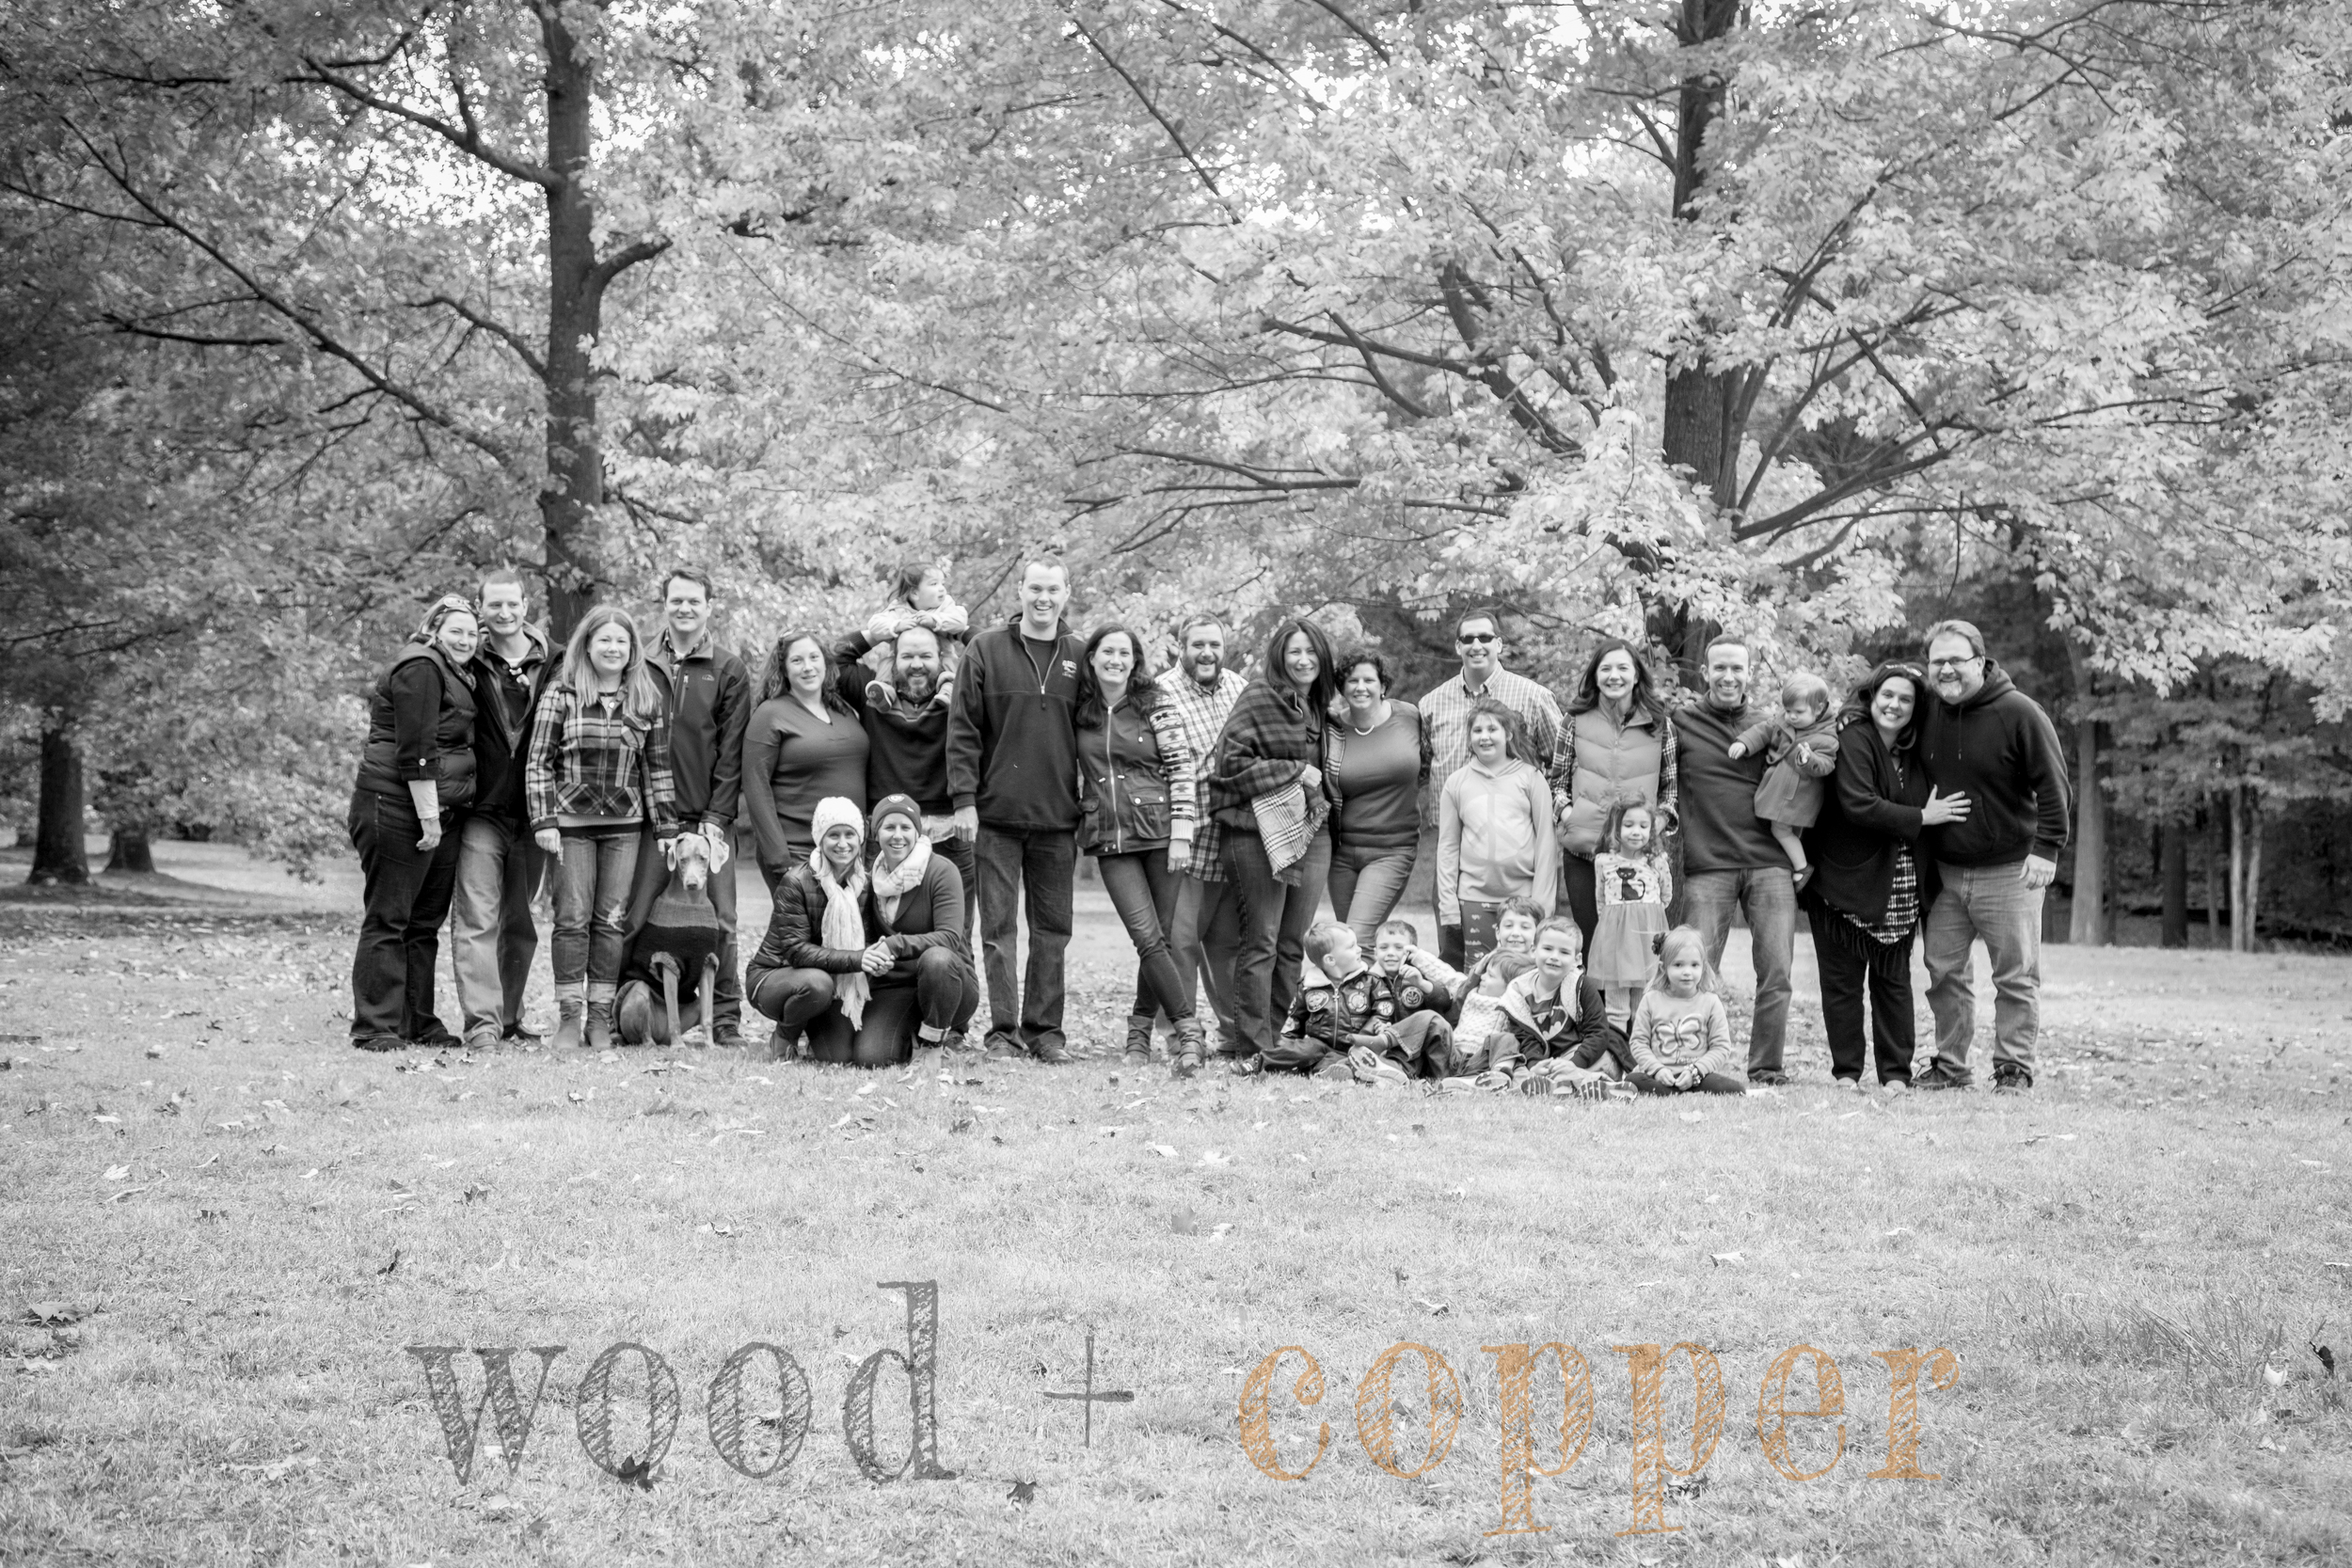 Our 4th annual Photo-Palooza with our Connecticut Crew took place a couple weeks ago...8 families, 16 adults (I use the term loosely...) (18 counting Will + Janet...), 10 kids (plus at least one in utero...), three dogs (sometimes more) - and a tremendous amount of laughter, leaves, and love.